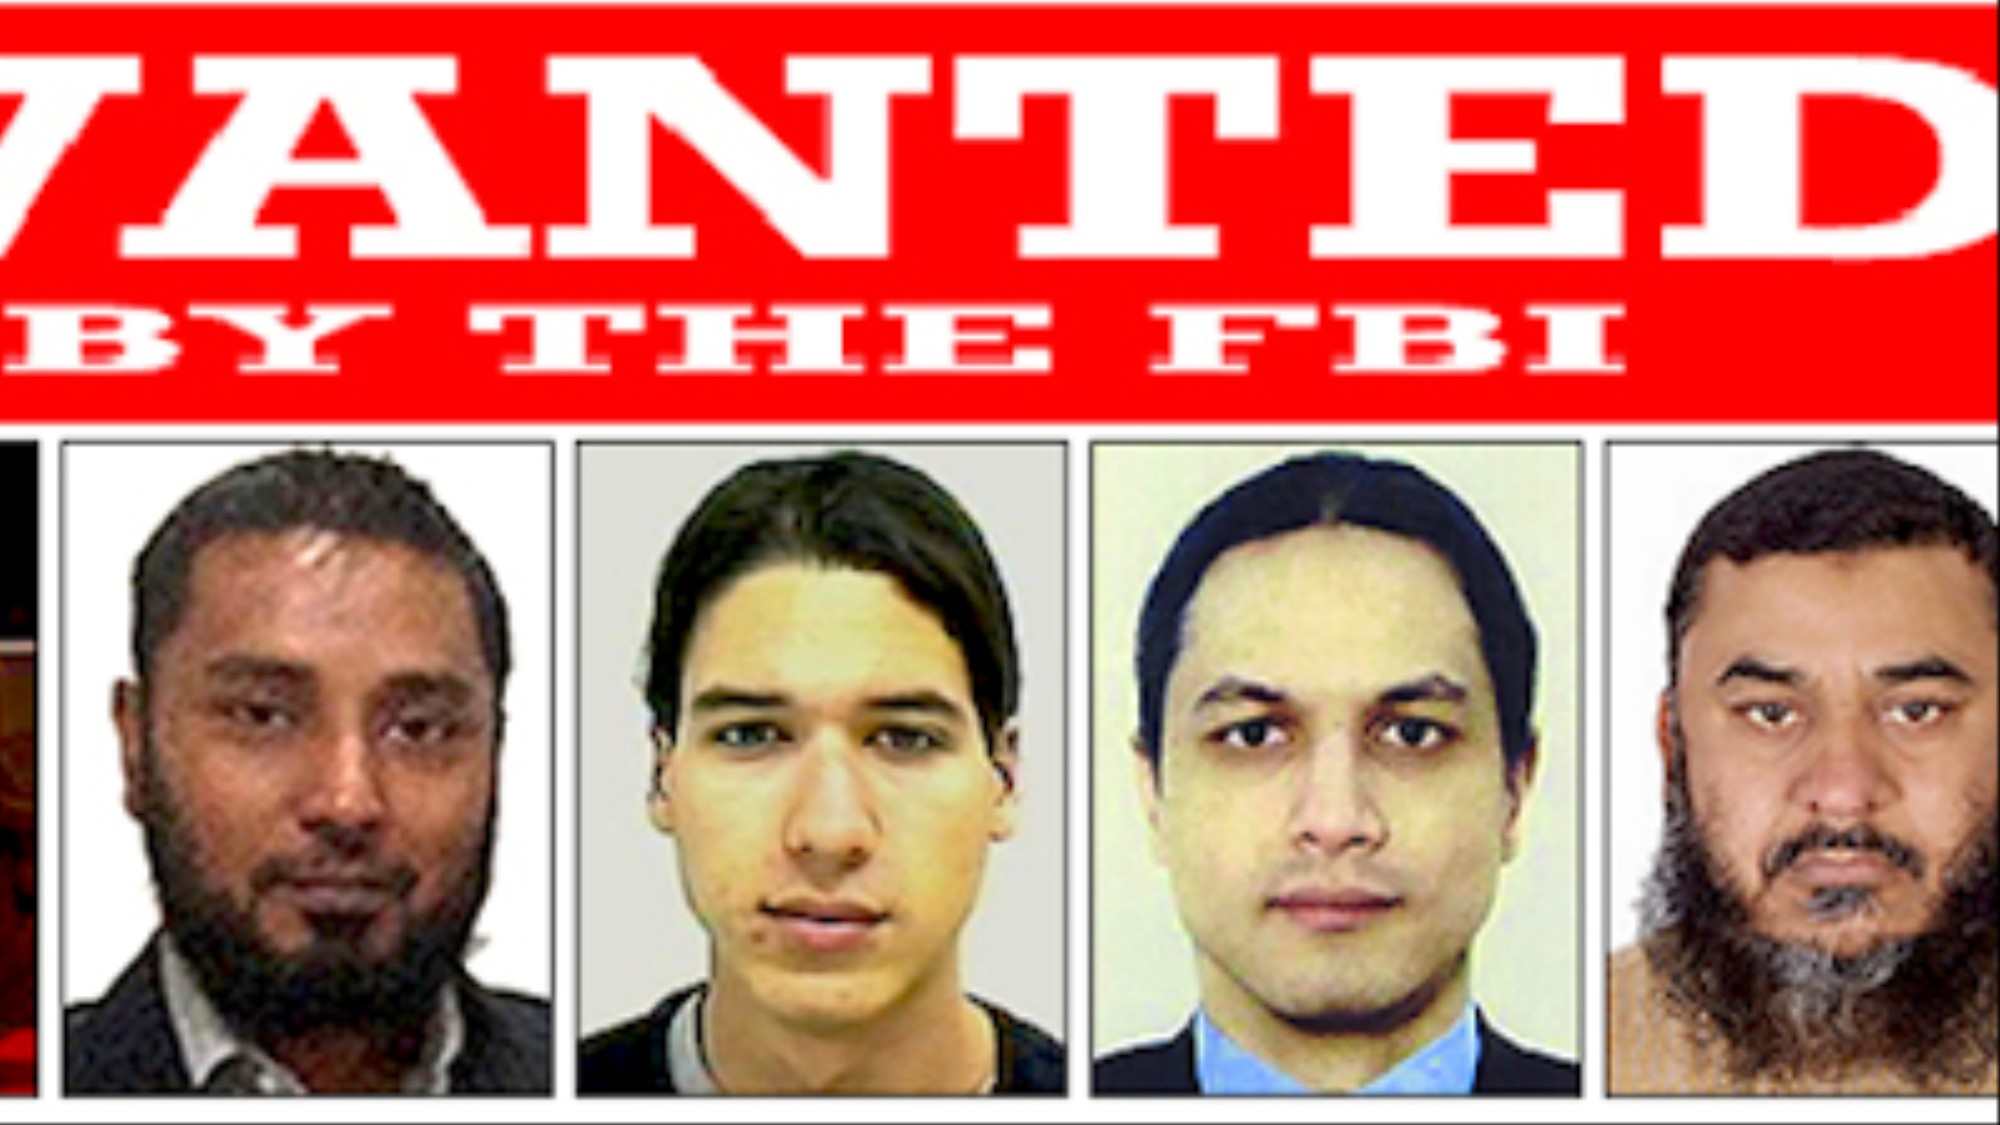 The FBI's Most Wanted Cyber-Criminals Have Terrible Aliases